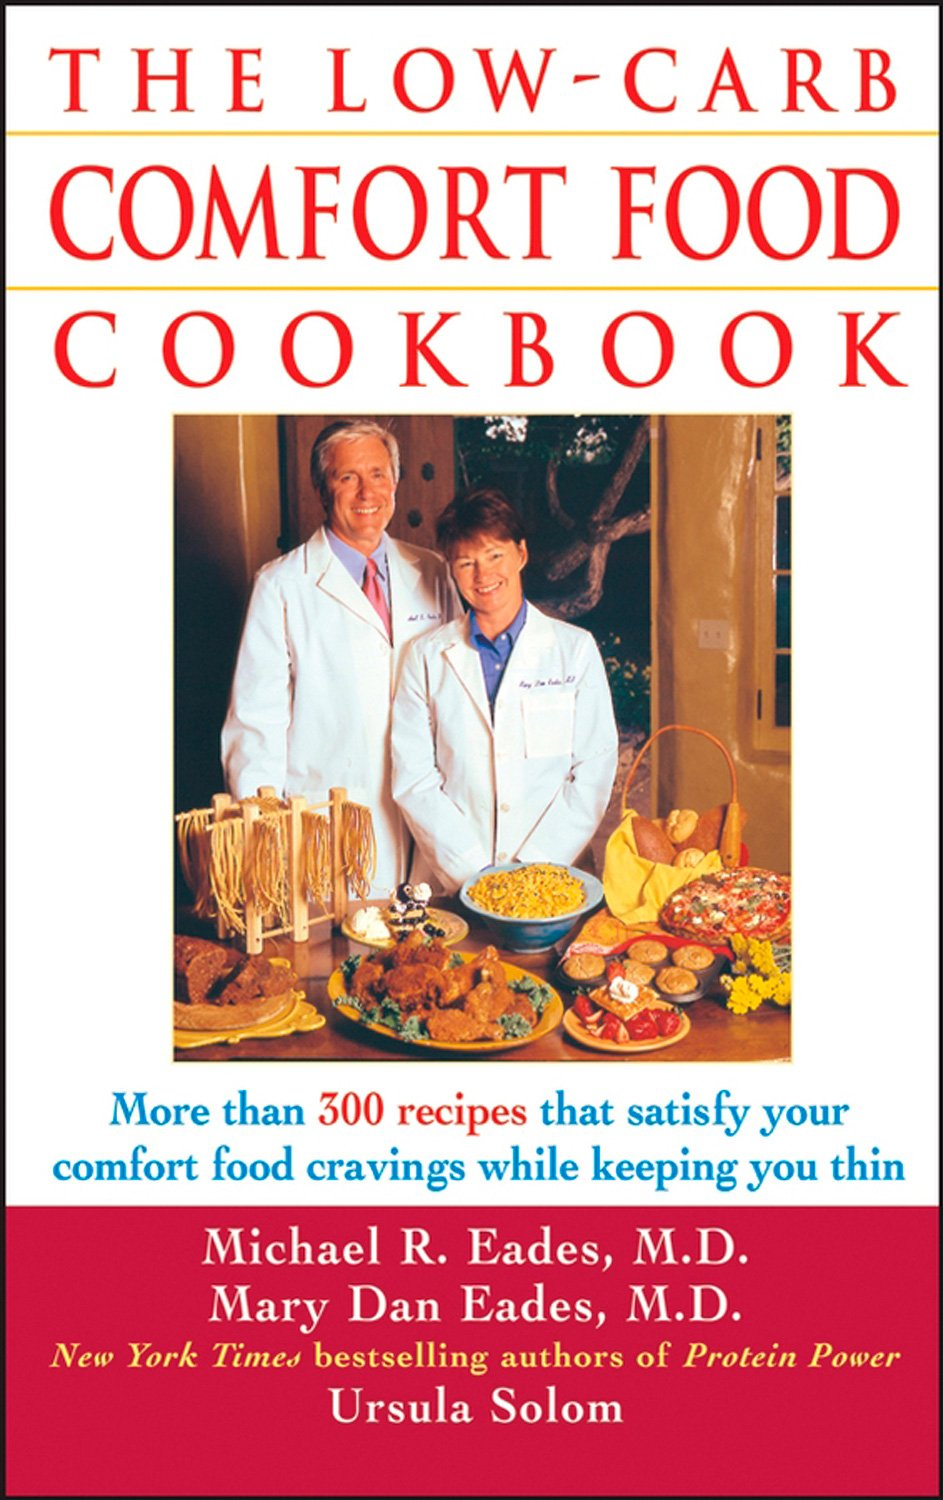 The low carb comfort food cookbook ursula solom mary dan eades the low carb comfort food cookbook ursula solom mary dan eades michael r eades 9780471454052 amazon books forumfinder Image collections